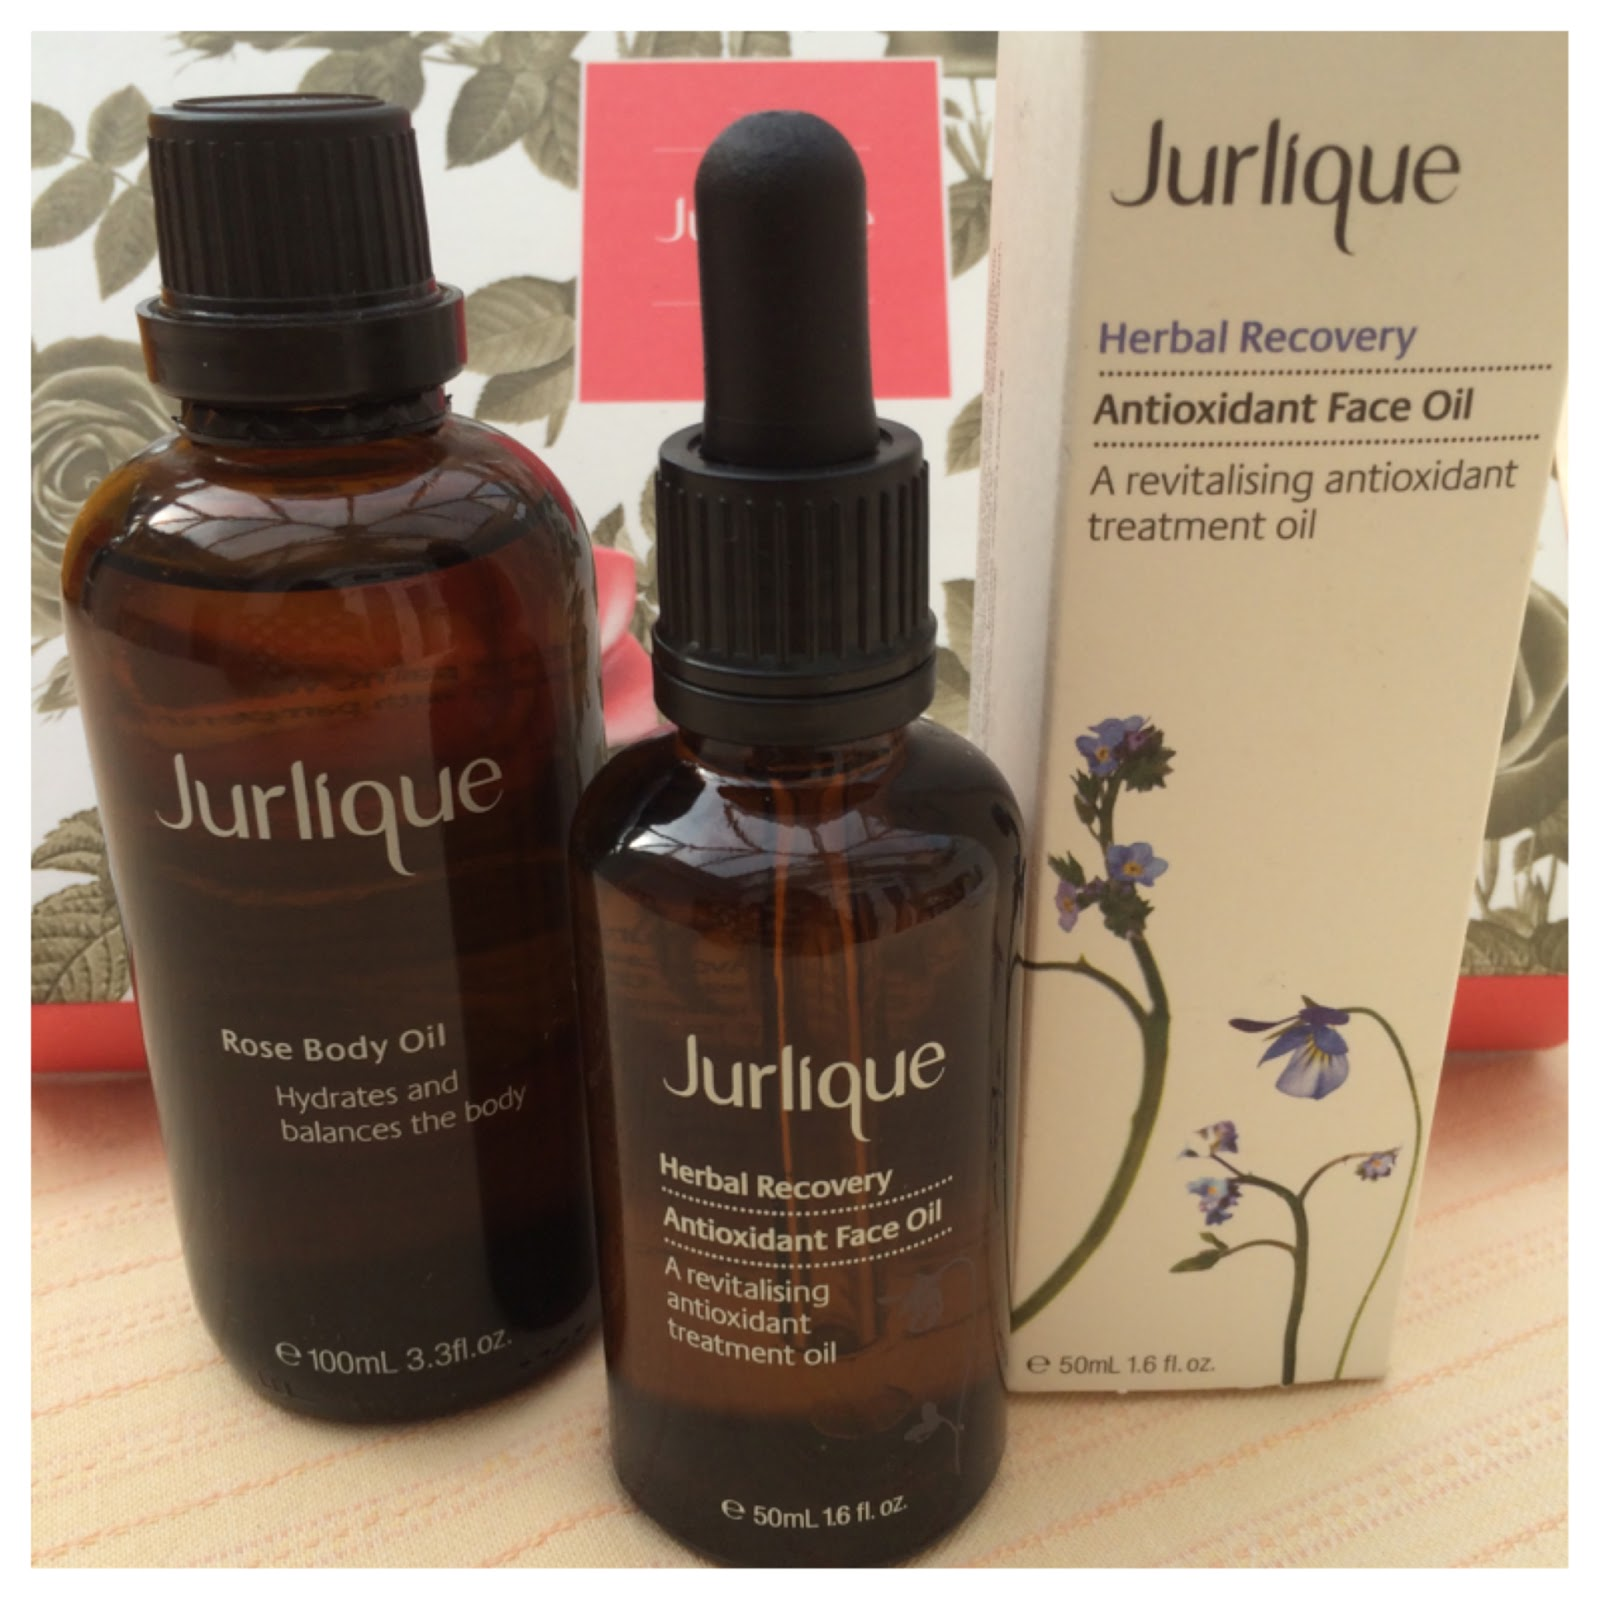 Jurlique herbal recovery face oil